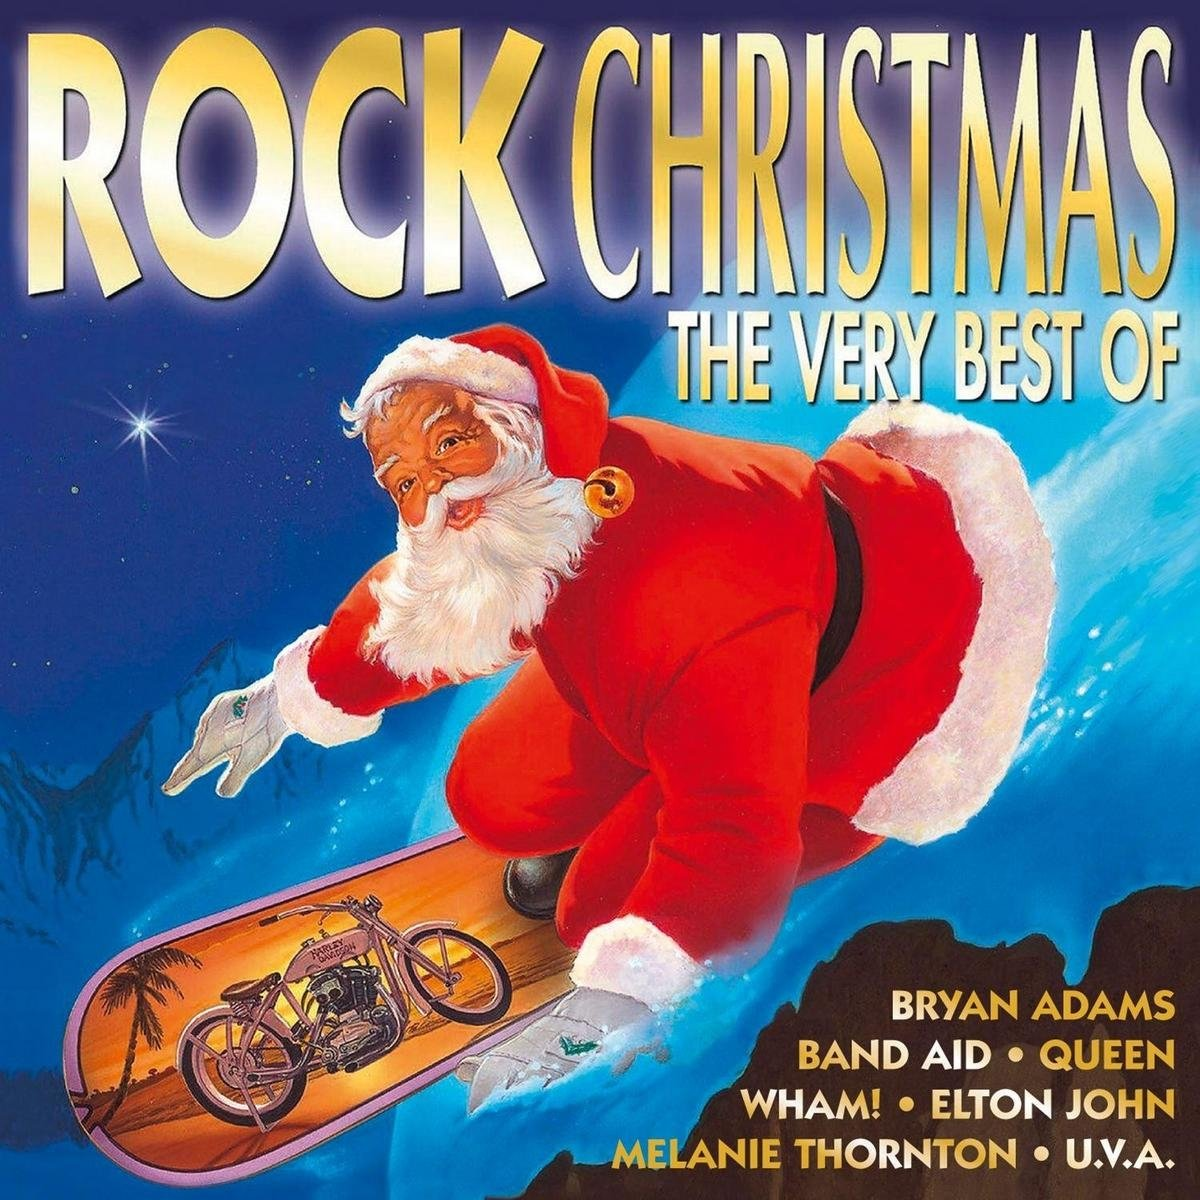 Rock Christmas - The Very Best Of (New Edition) - Various: Amazon.de ...